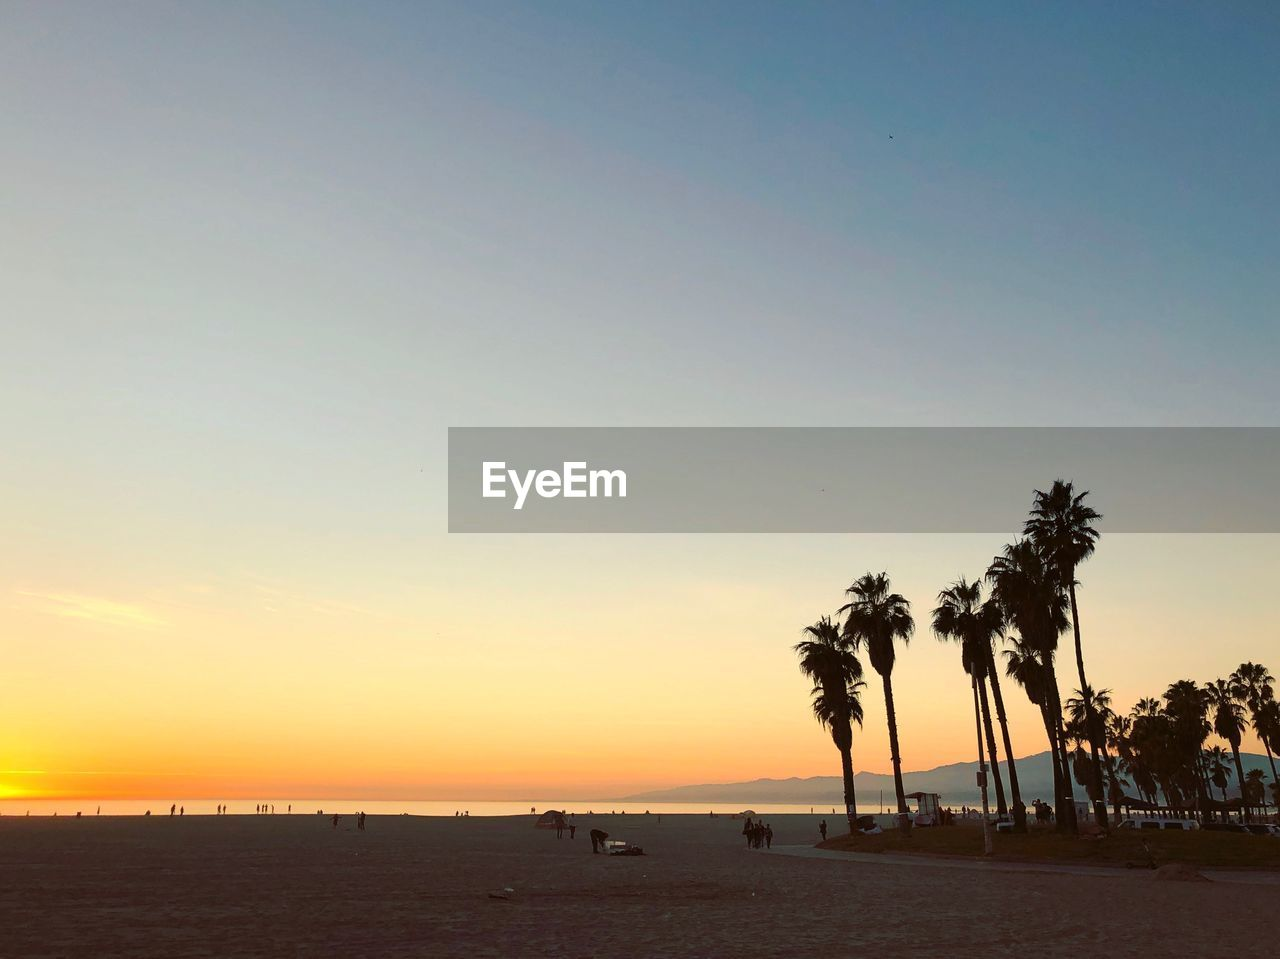 sunset, sky, tree, palm tree, tropical climate, scenics - nature, beauty in nature, water, land, plant, sea, beach, tranquility, tranquil scene, nature, silhouette, copy space, clear sky, orange color, outdoors, horizon over water, coconut palm tree